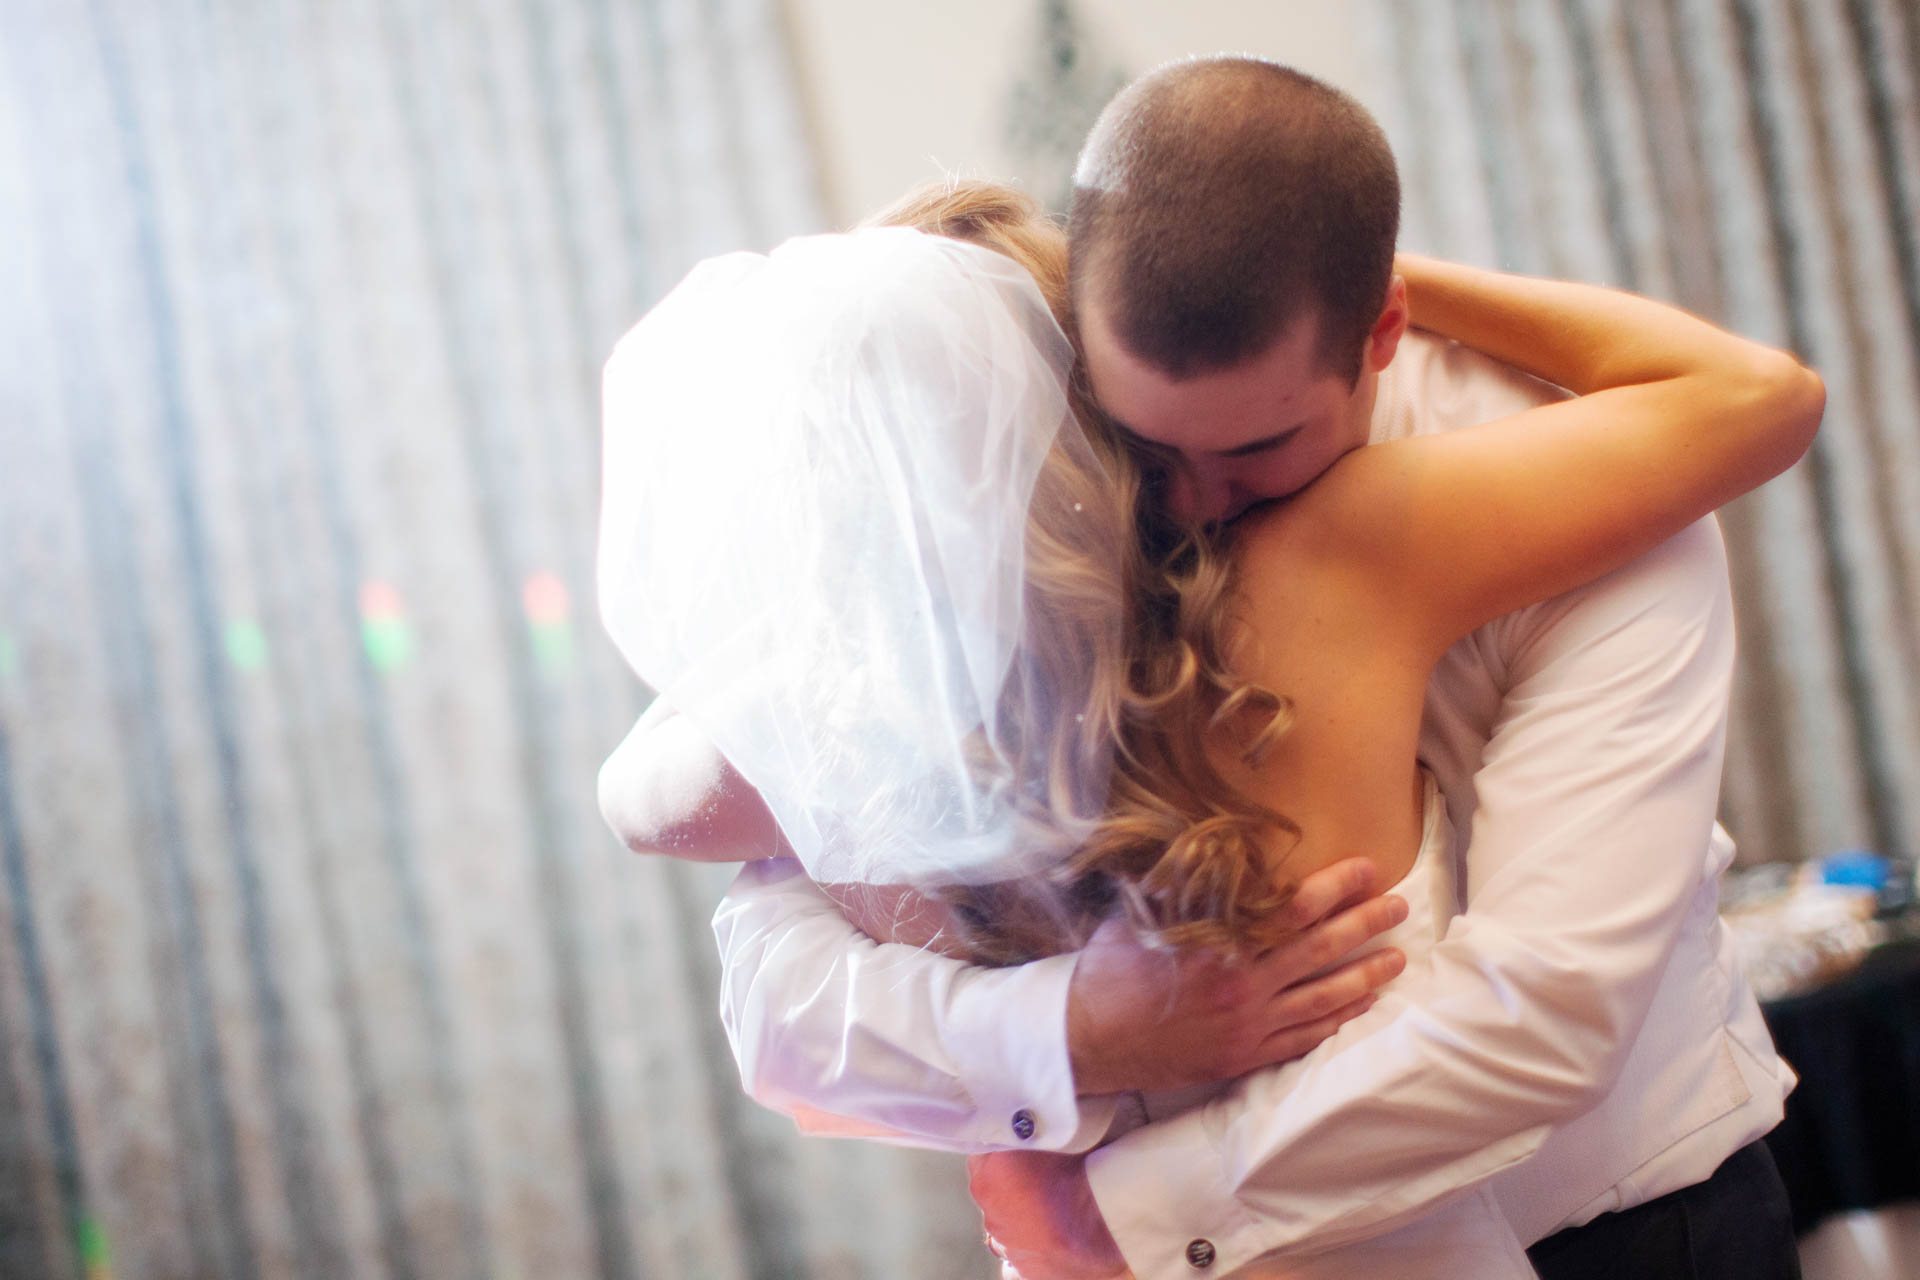 Brittany&EricWED_677_COLOR.jpg